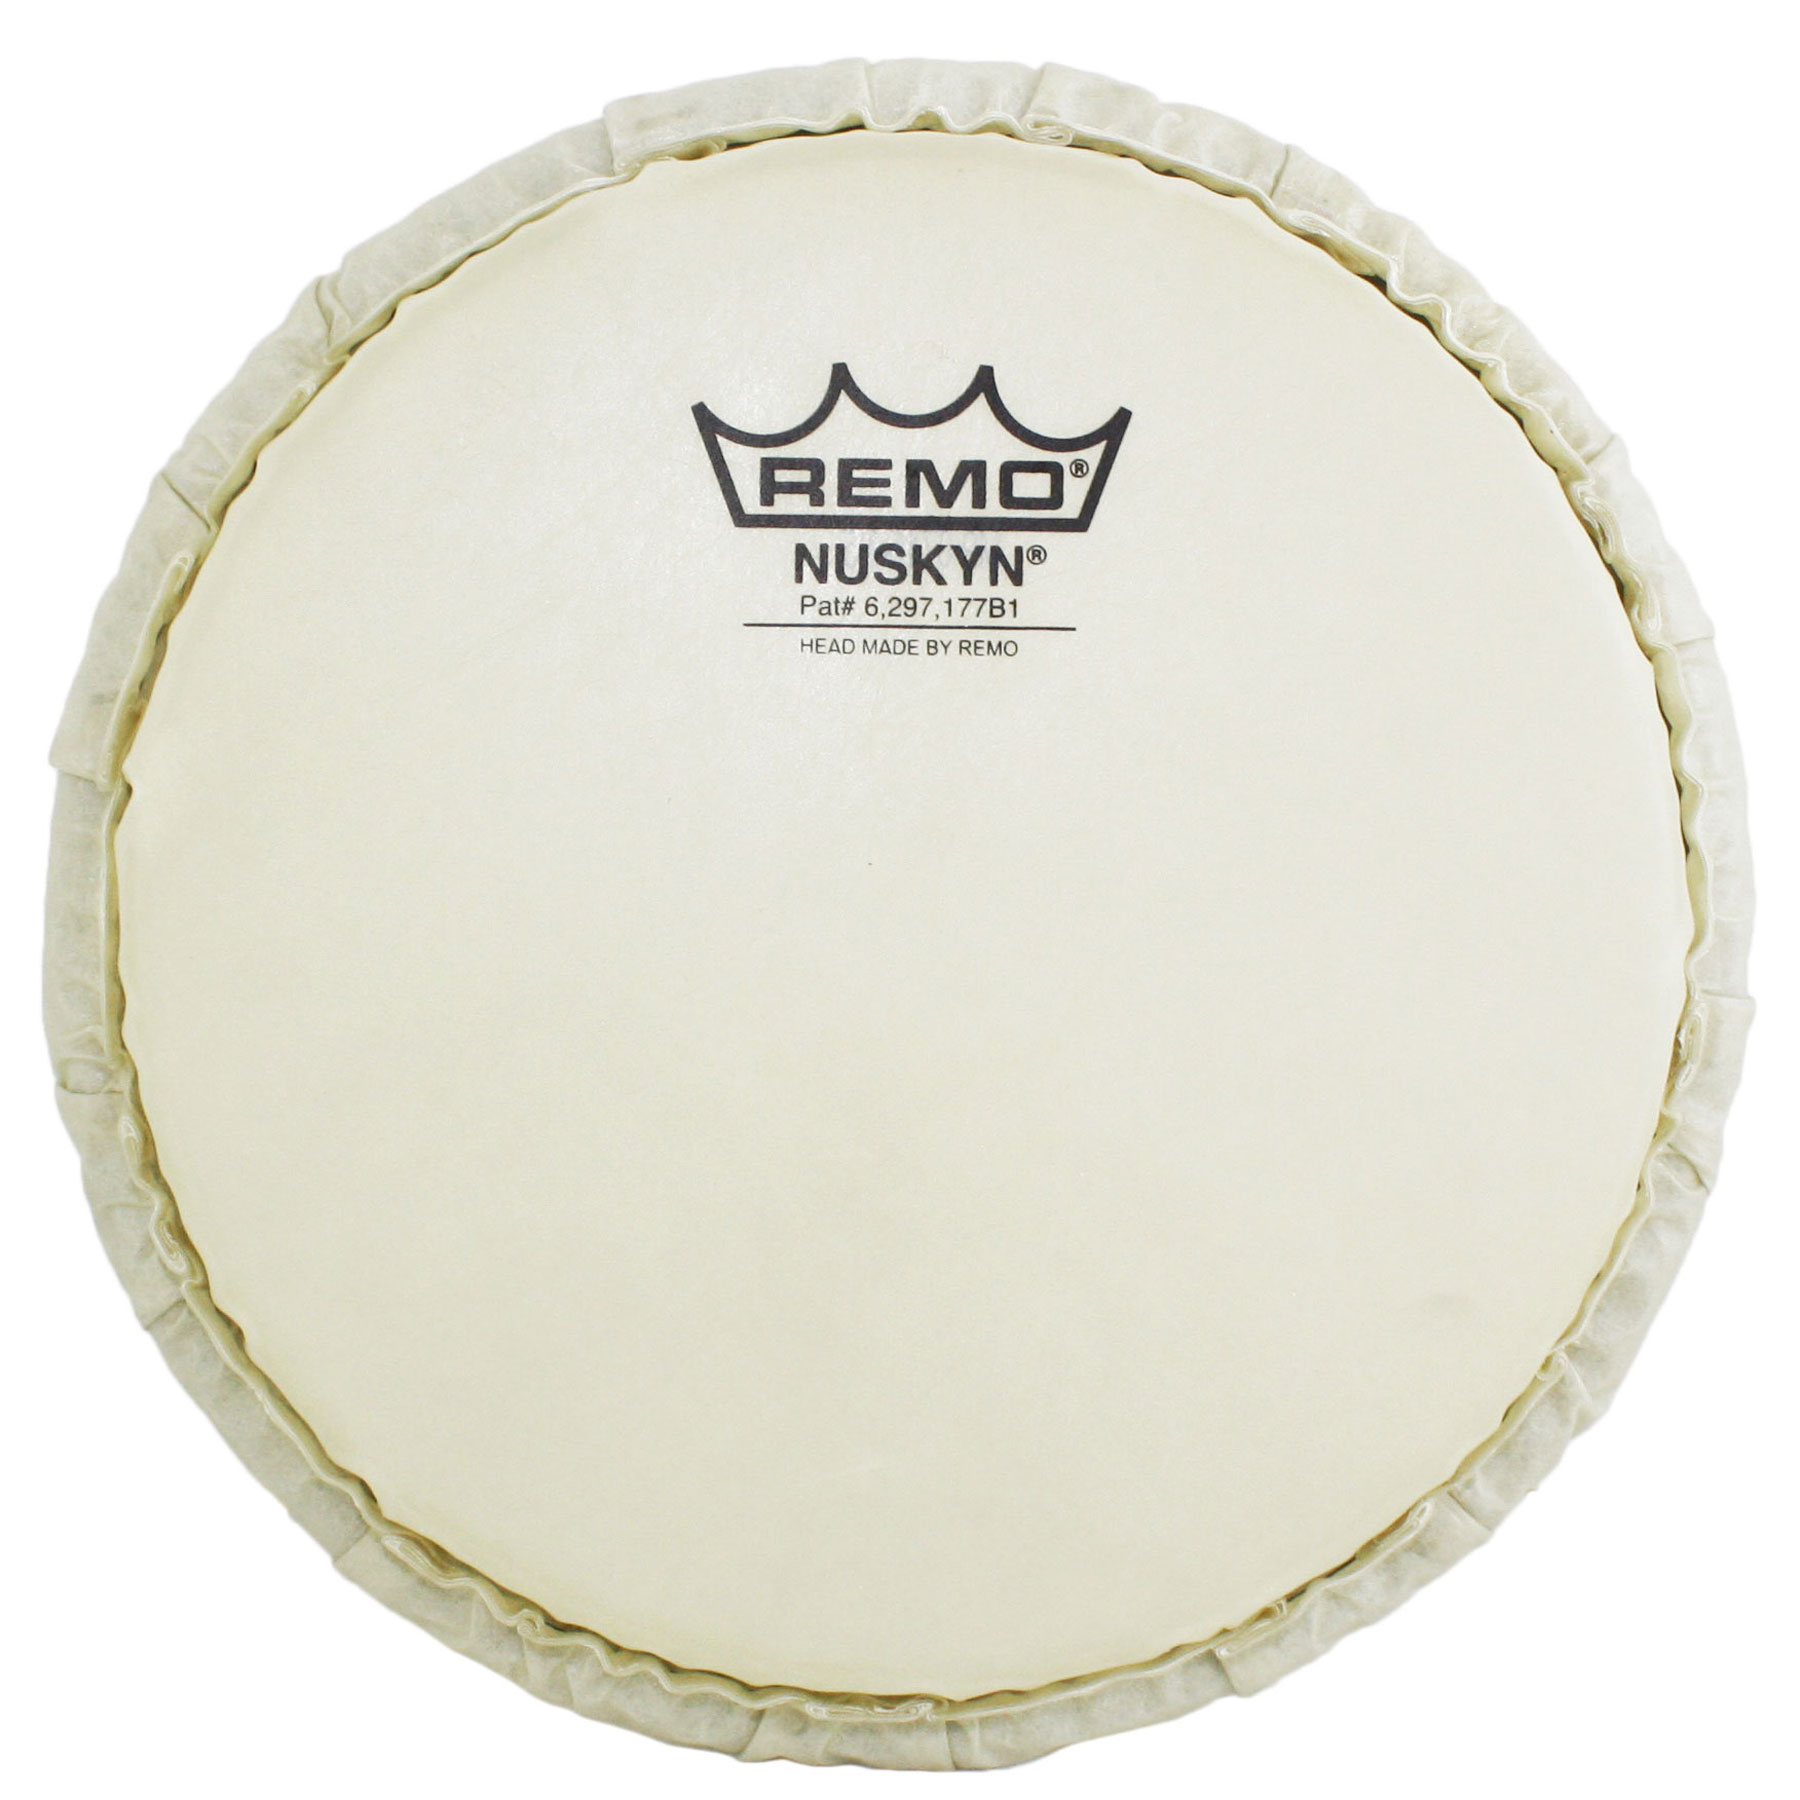 "Remo 8.5"" Tucked Nuskyn Bongo Drum Head"